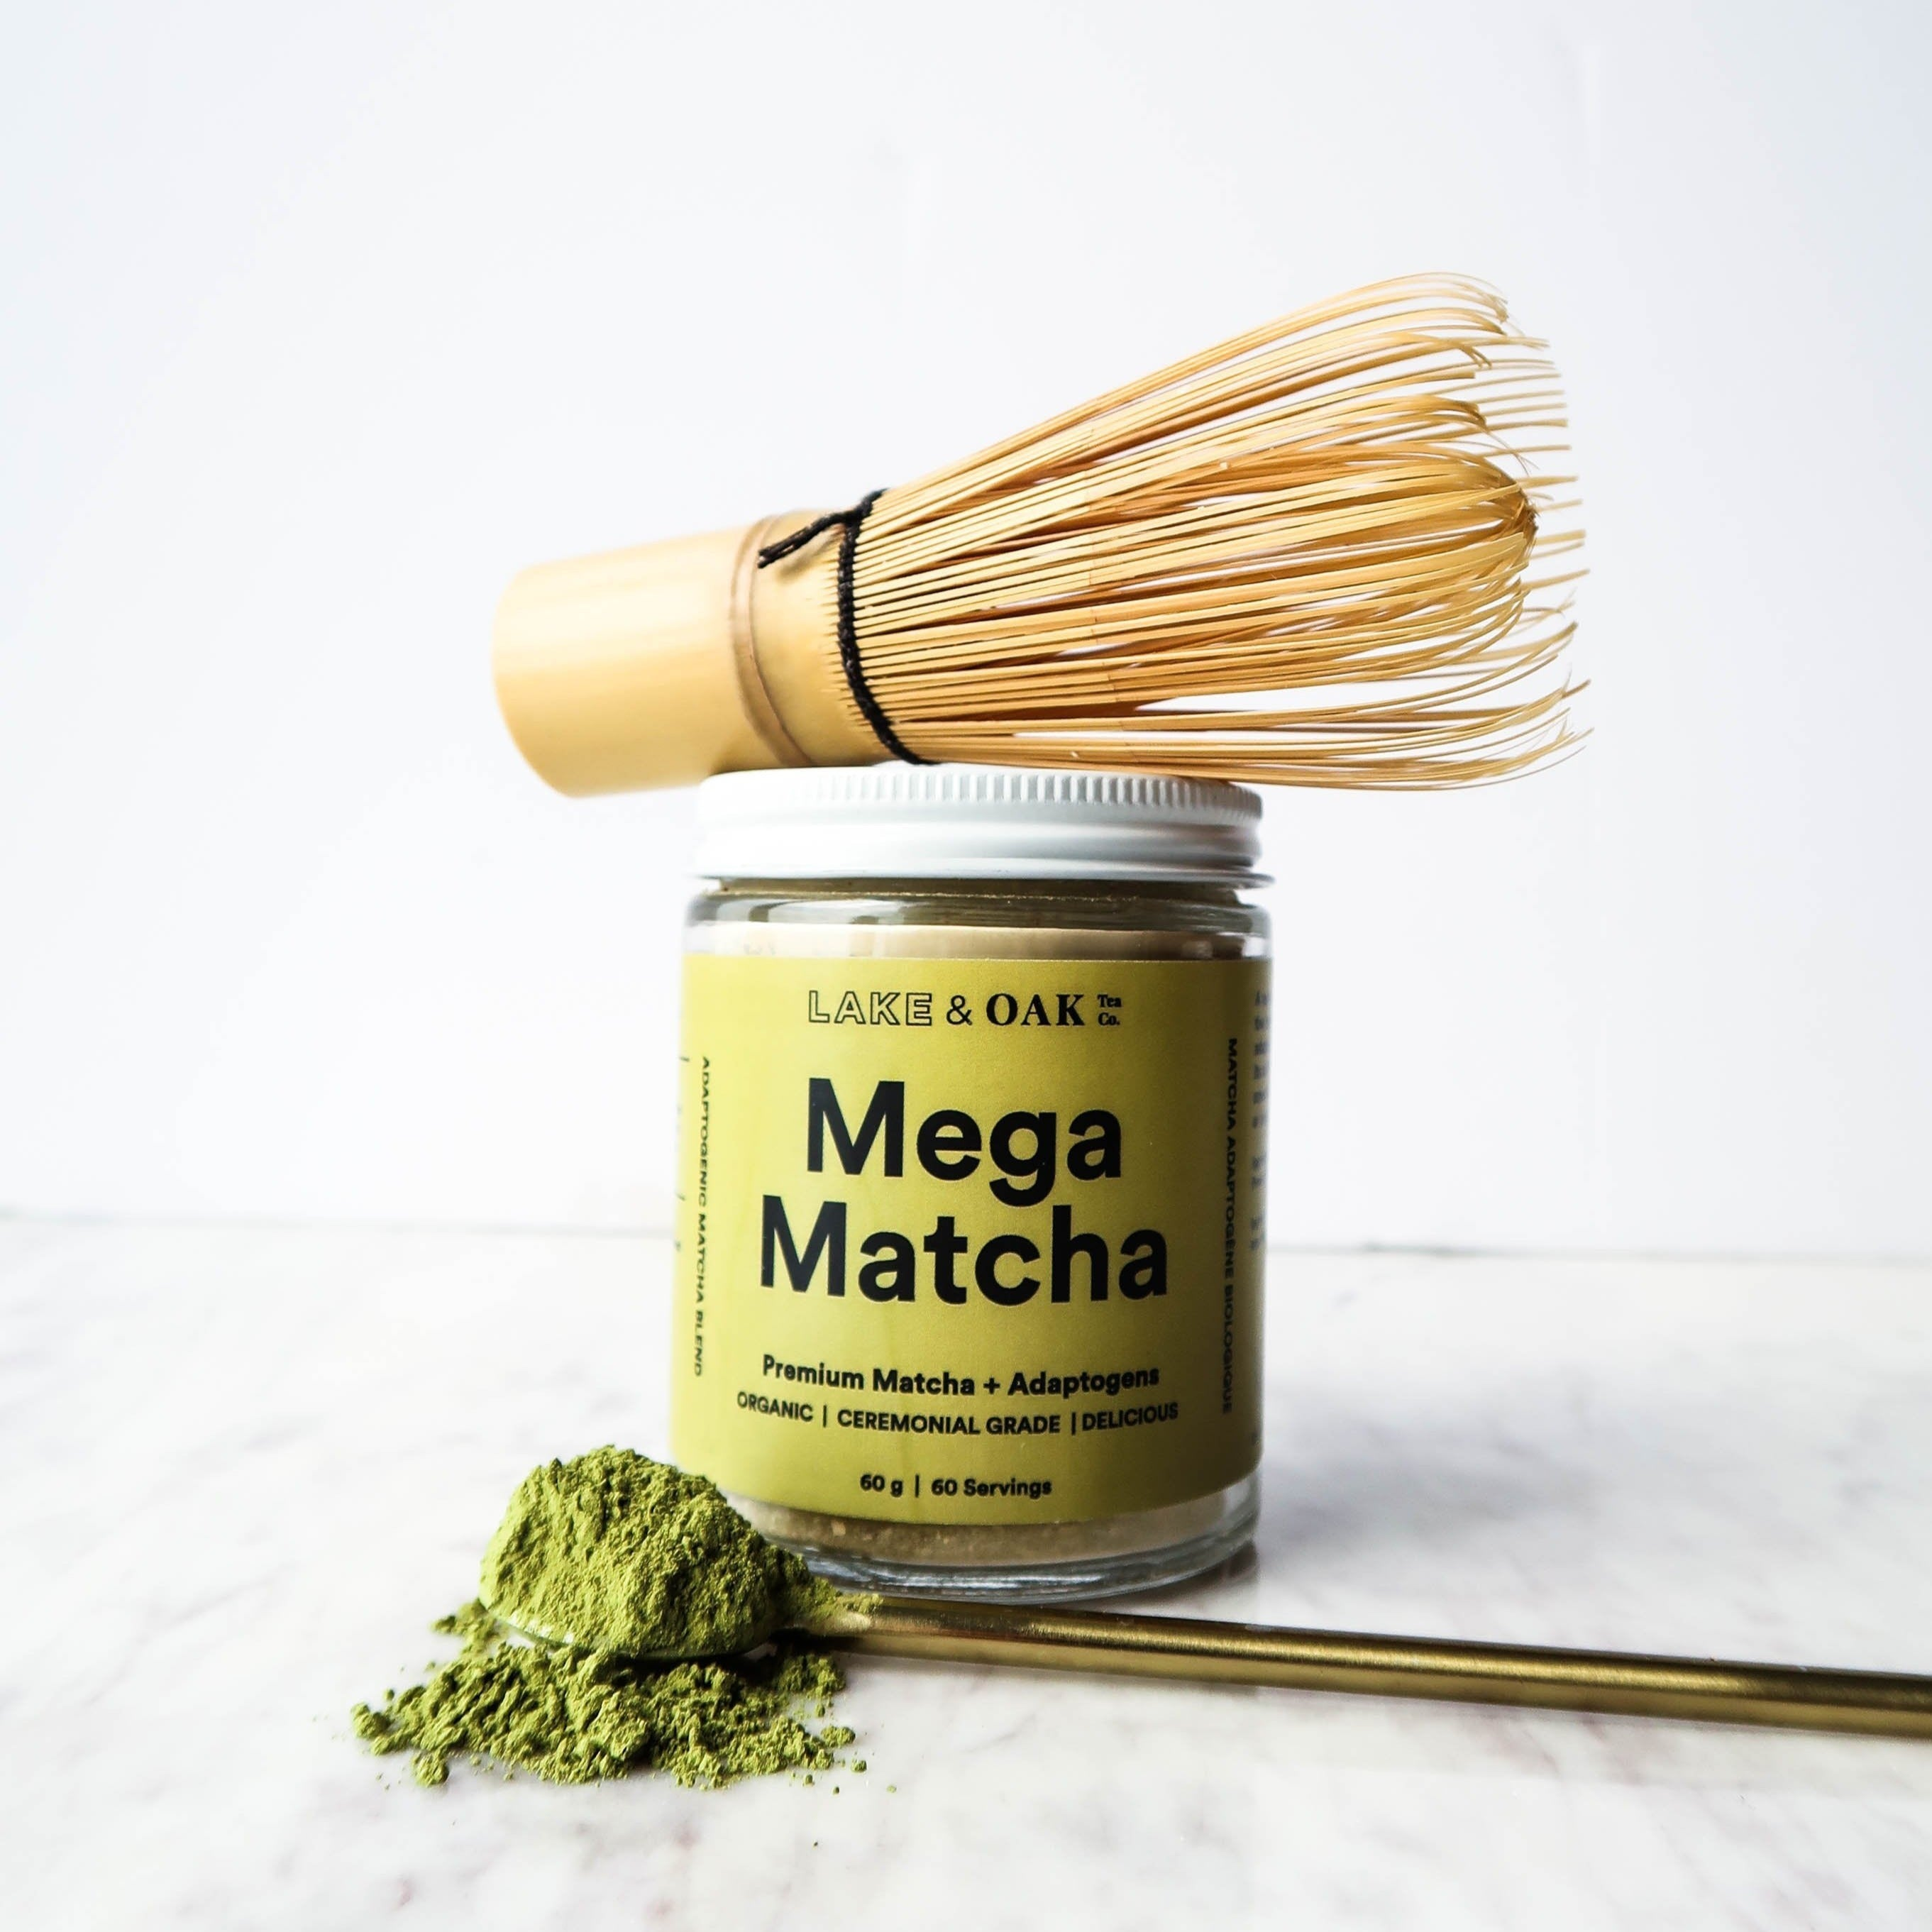 Mega Matcha - Tea Blend - The Lake